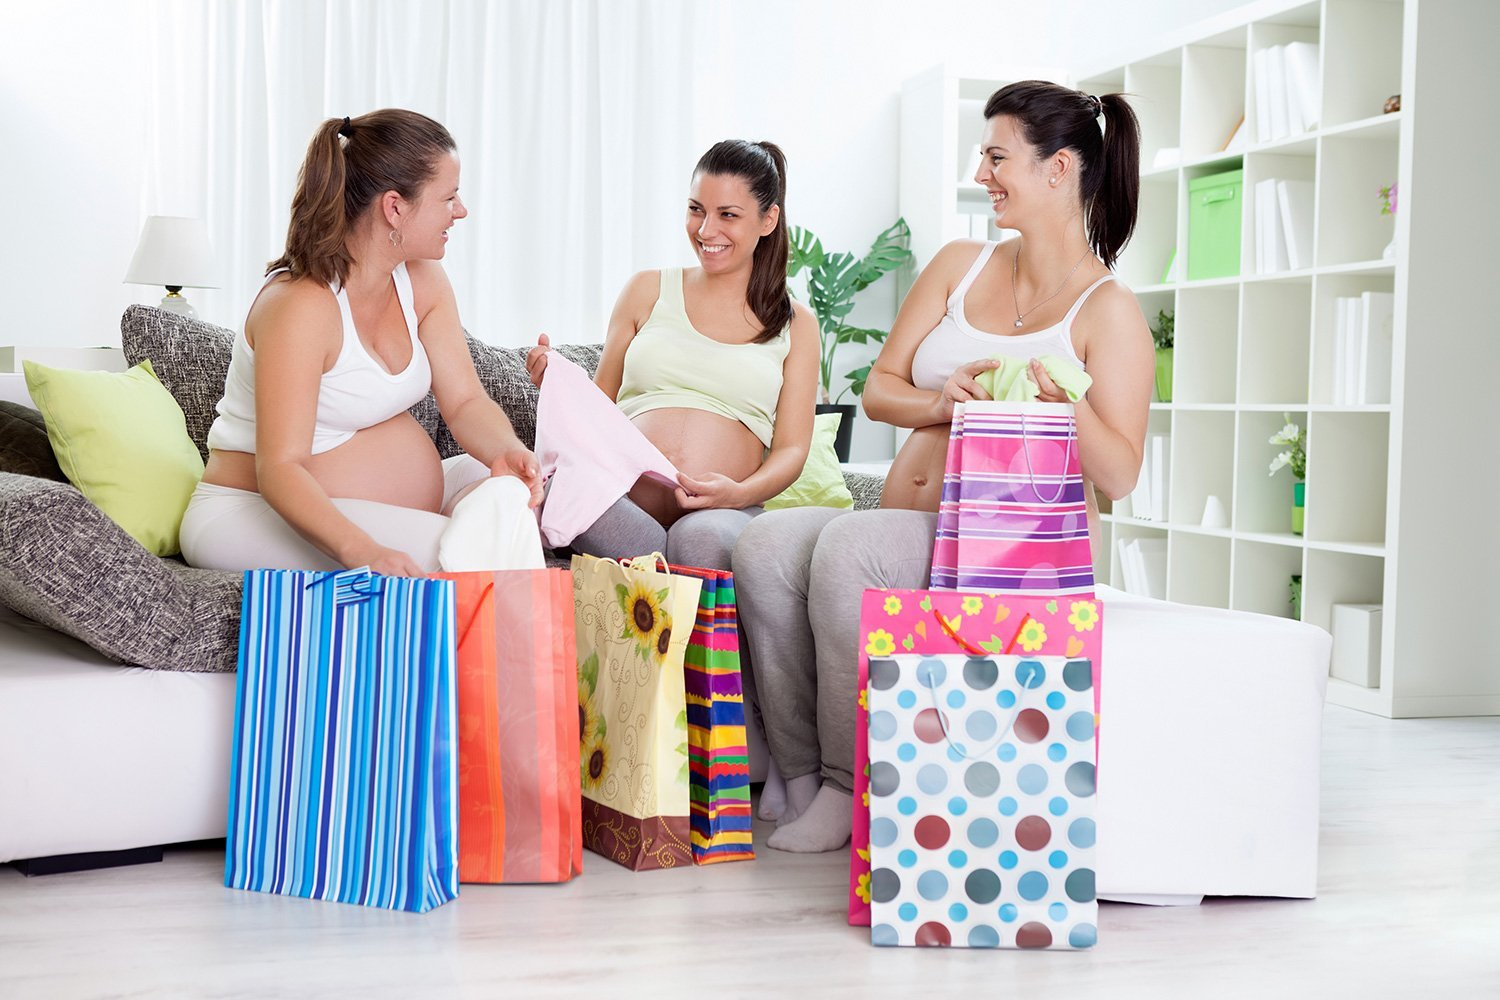 Happiness pregnant women with their shopping bags at home